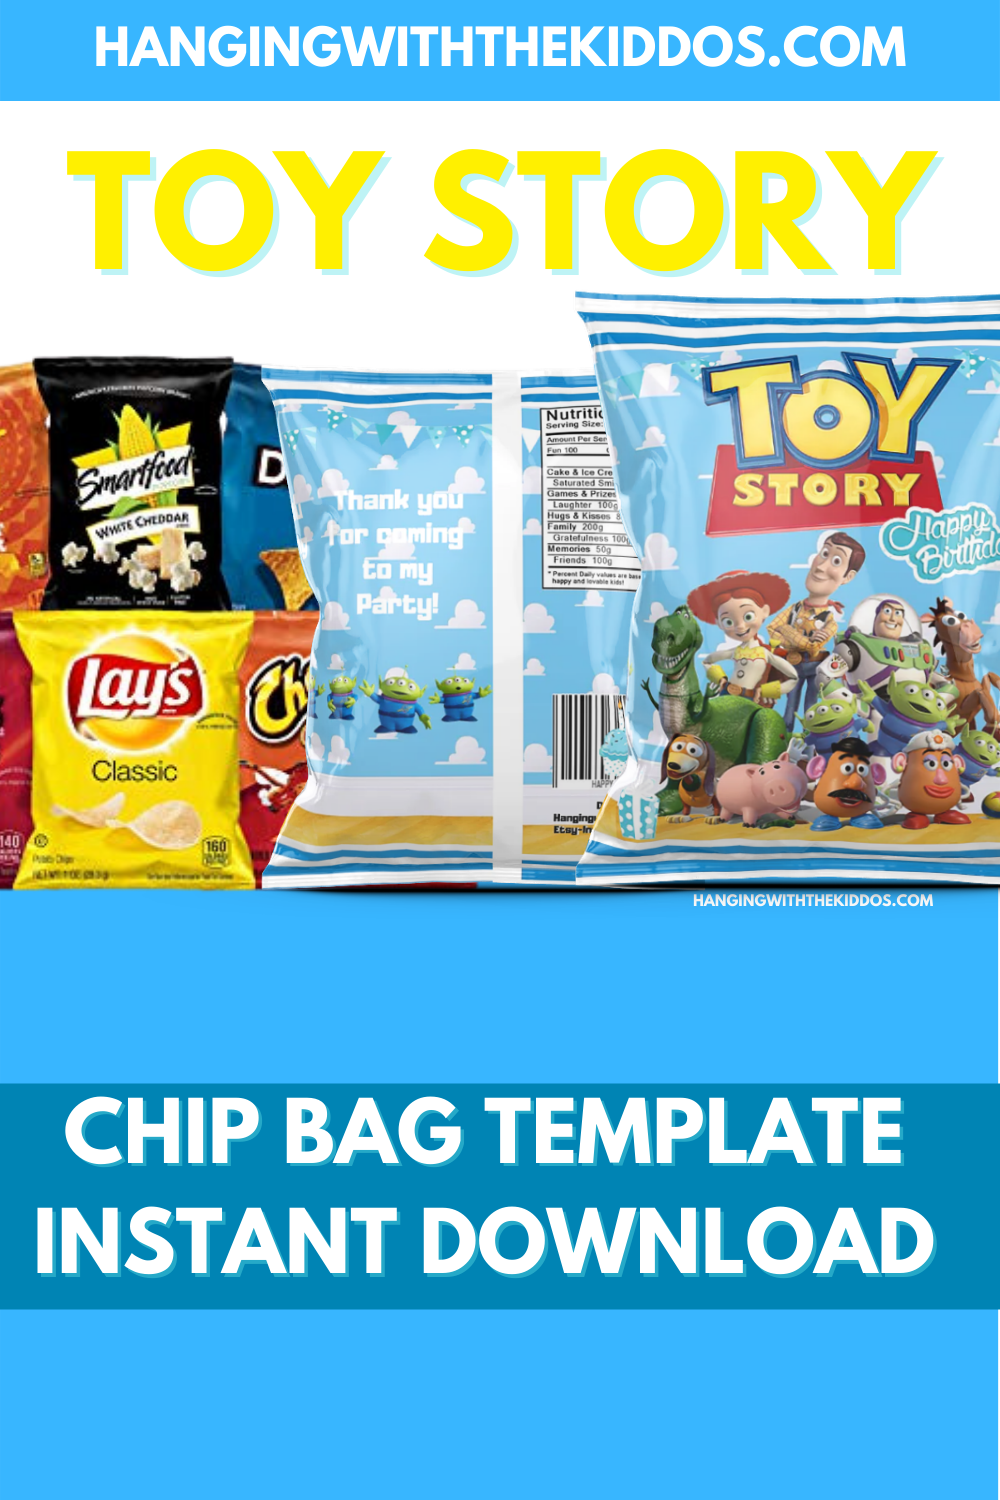 FREE TOY STORY PARTY PRINTABLE CHIP BAG TEMPLATE